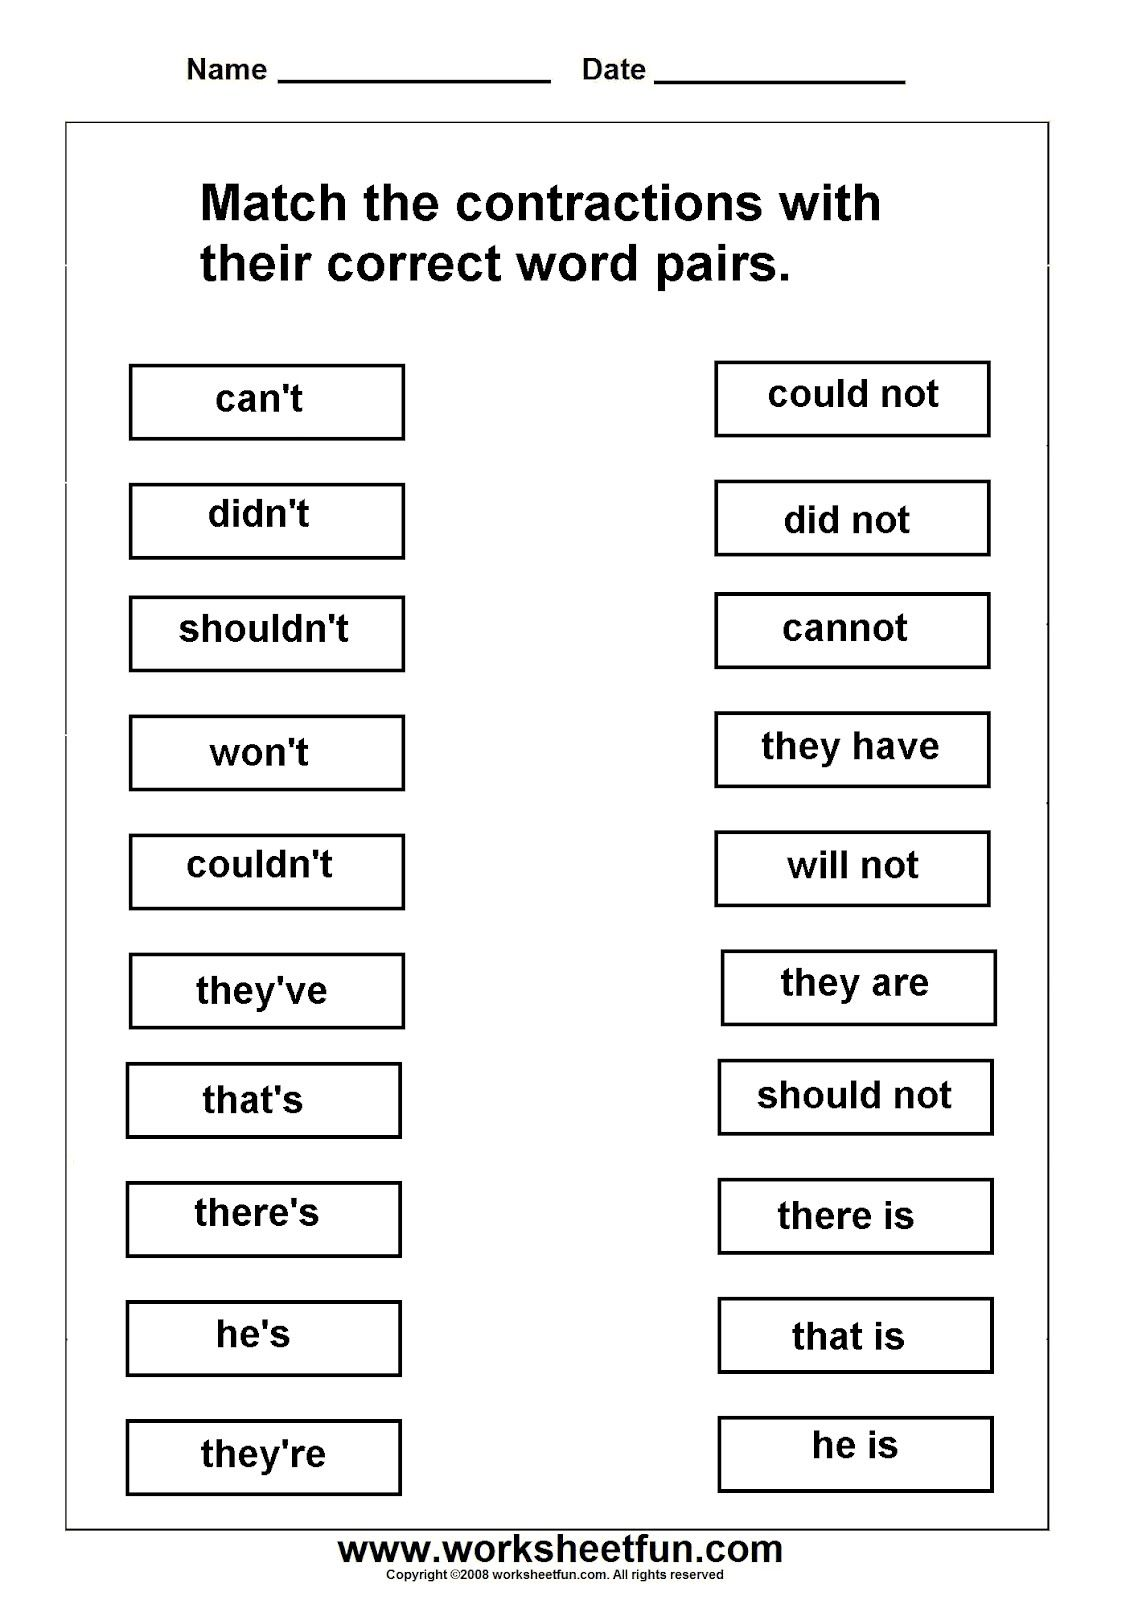 Worksheets Free Printable Contraction Worksheets contractions worksheets can t didn shouldn won couldn they ve literacy worksheetsfree printable